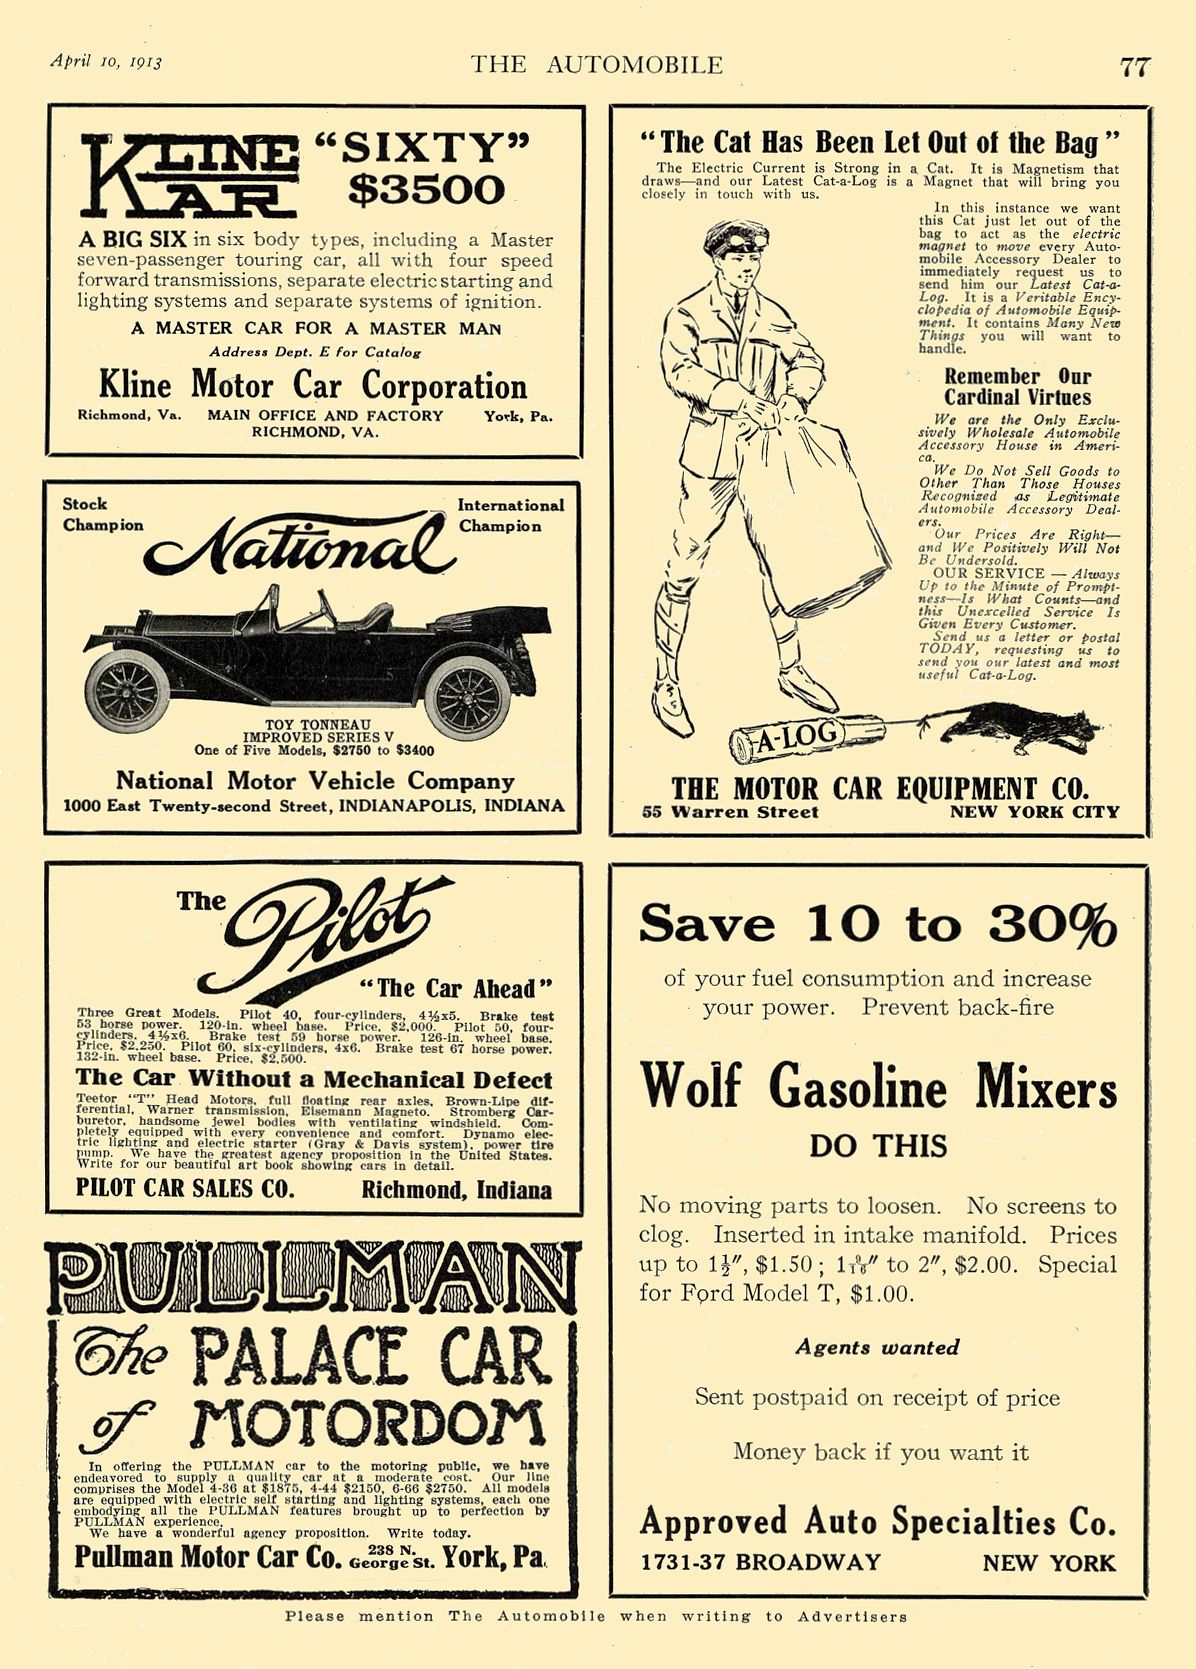 1913 4 10 NATIONAL National TOY TONNEAU IMPROVED SERIES V National Motor Vehicle Company Indianapolis, IND THE AUTOMOBILE April 10, 1913 8.5″x12″ page 77